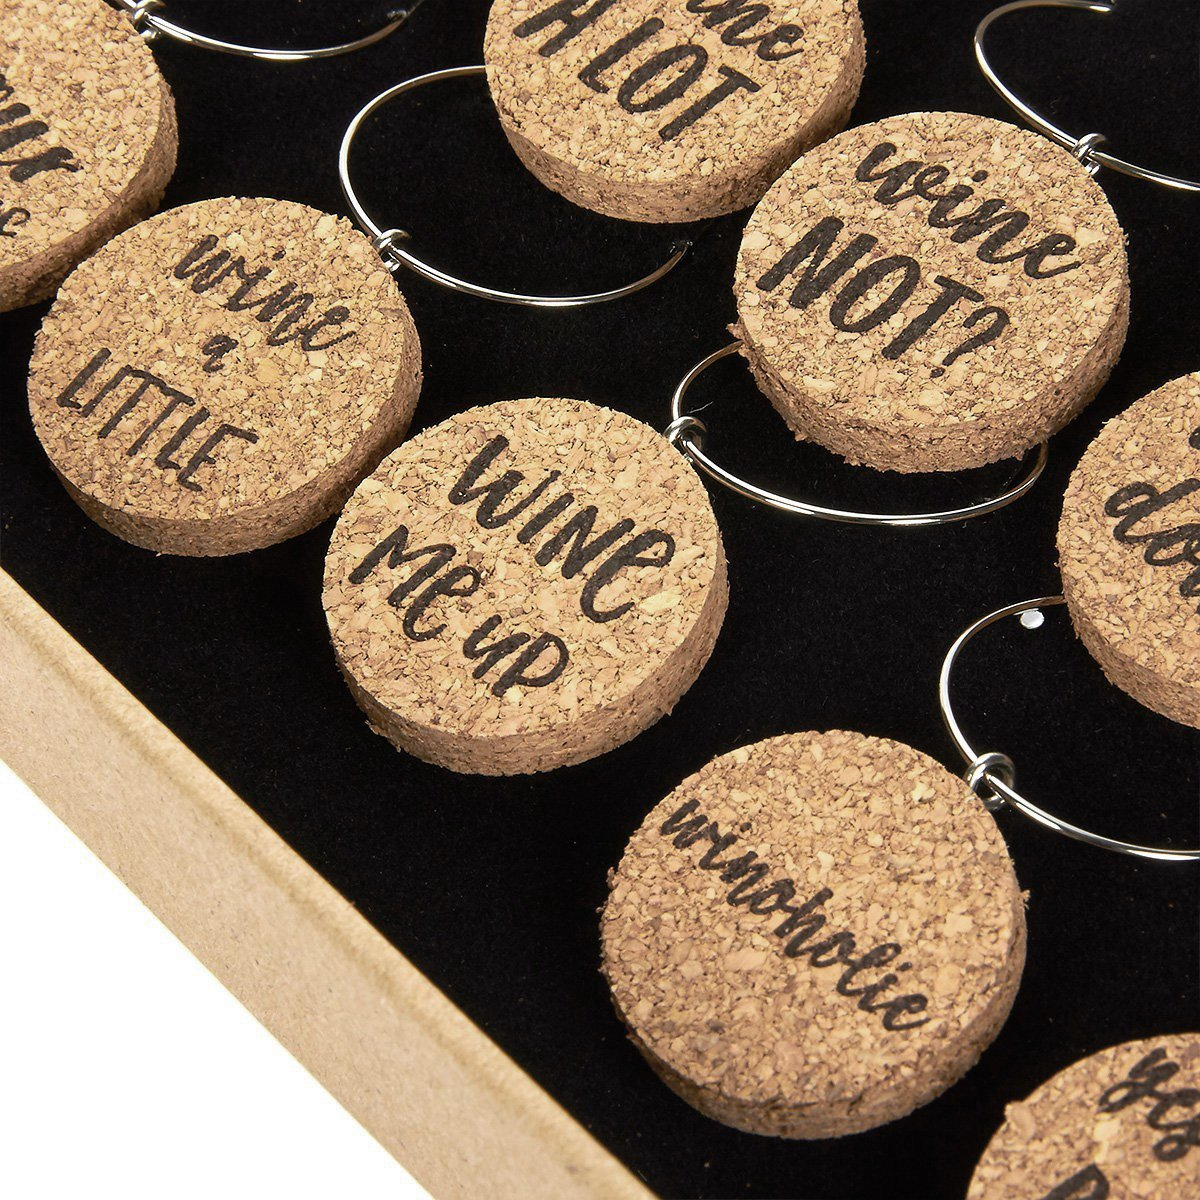 Wine Glass Charms - 12-Piece Wine Charm Drink Markers - Natural Cork Wine Lover Themed Wine Glass Tags Decorations for Parties, Gatherings, Reunions - 1 x 0.19 inches by Juvale (Image #5)